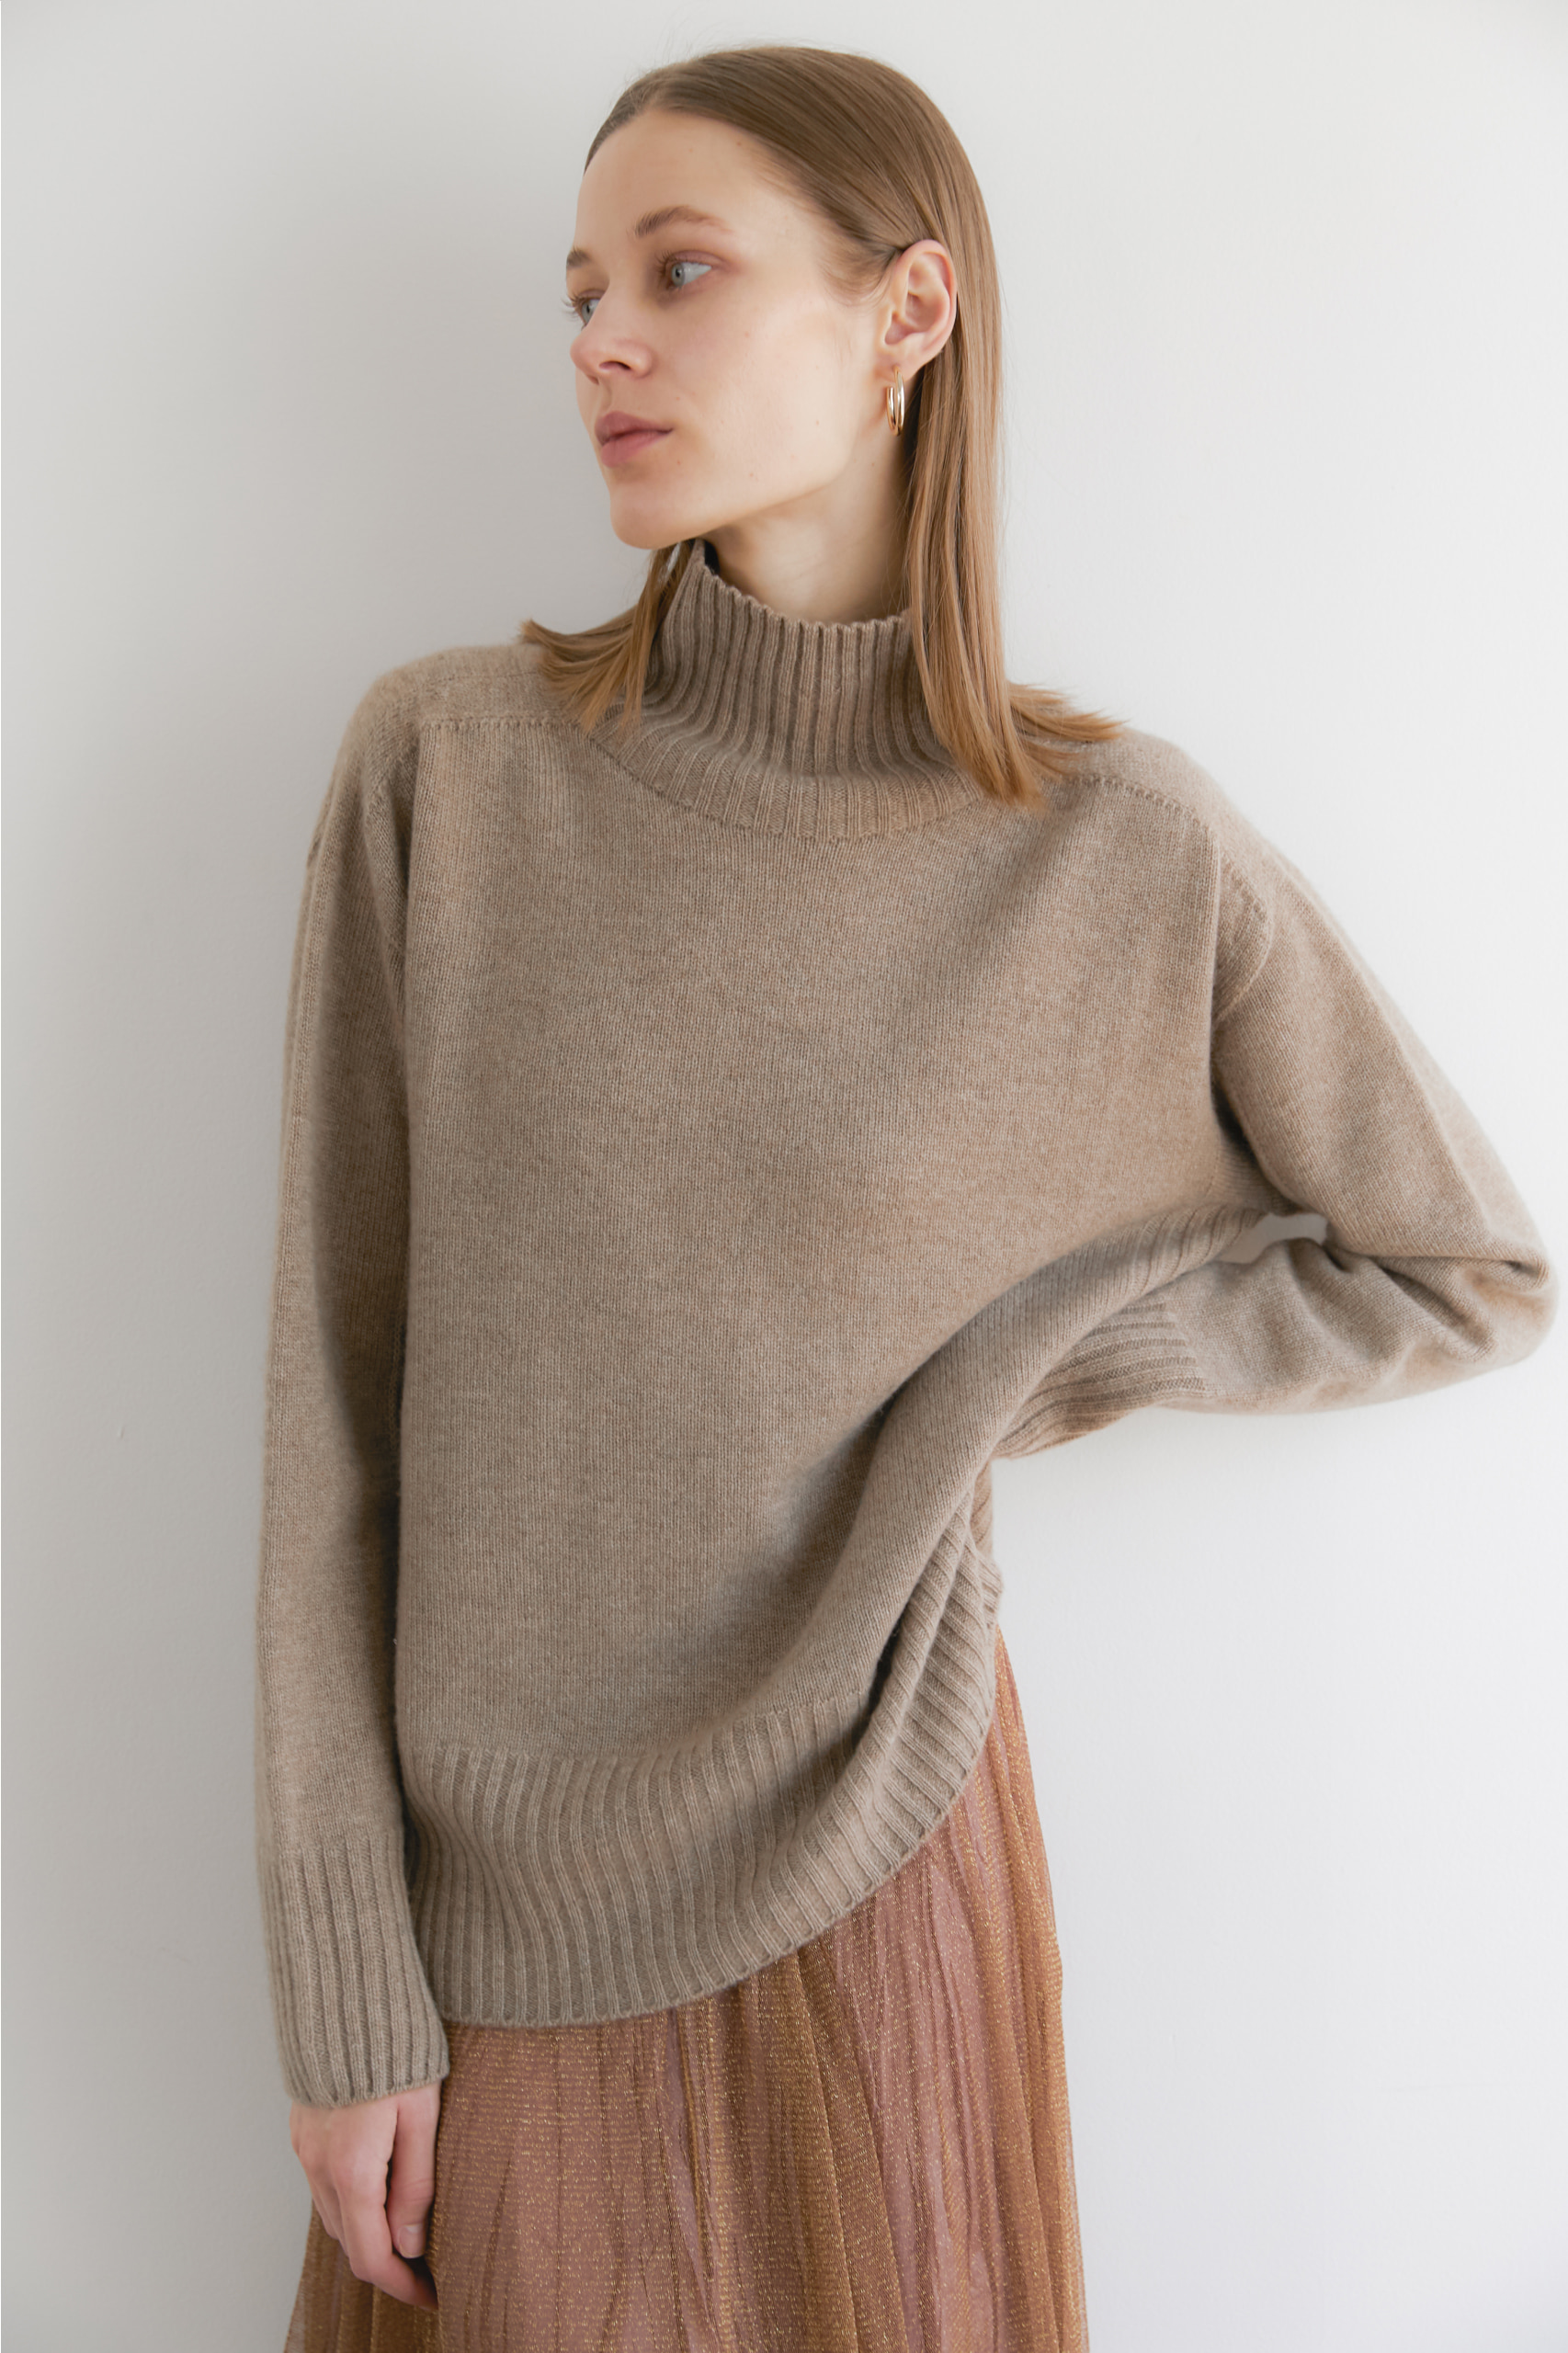 [NAMED collection - 로로피아나] 프리미엄 퓨어 캐시미어100 홀가먼트 컬러블럭 풀오버 [Pure cashmere100 whole-garment knitting turtleneck pullover - Chocolate beige]